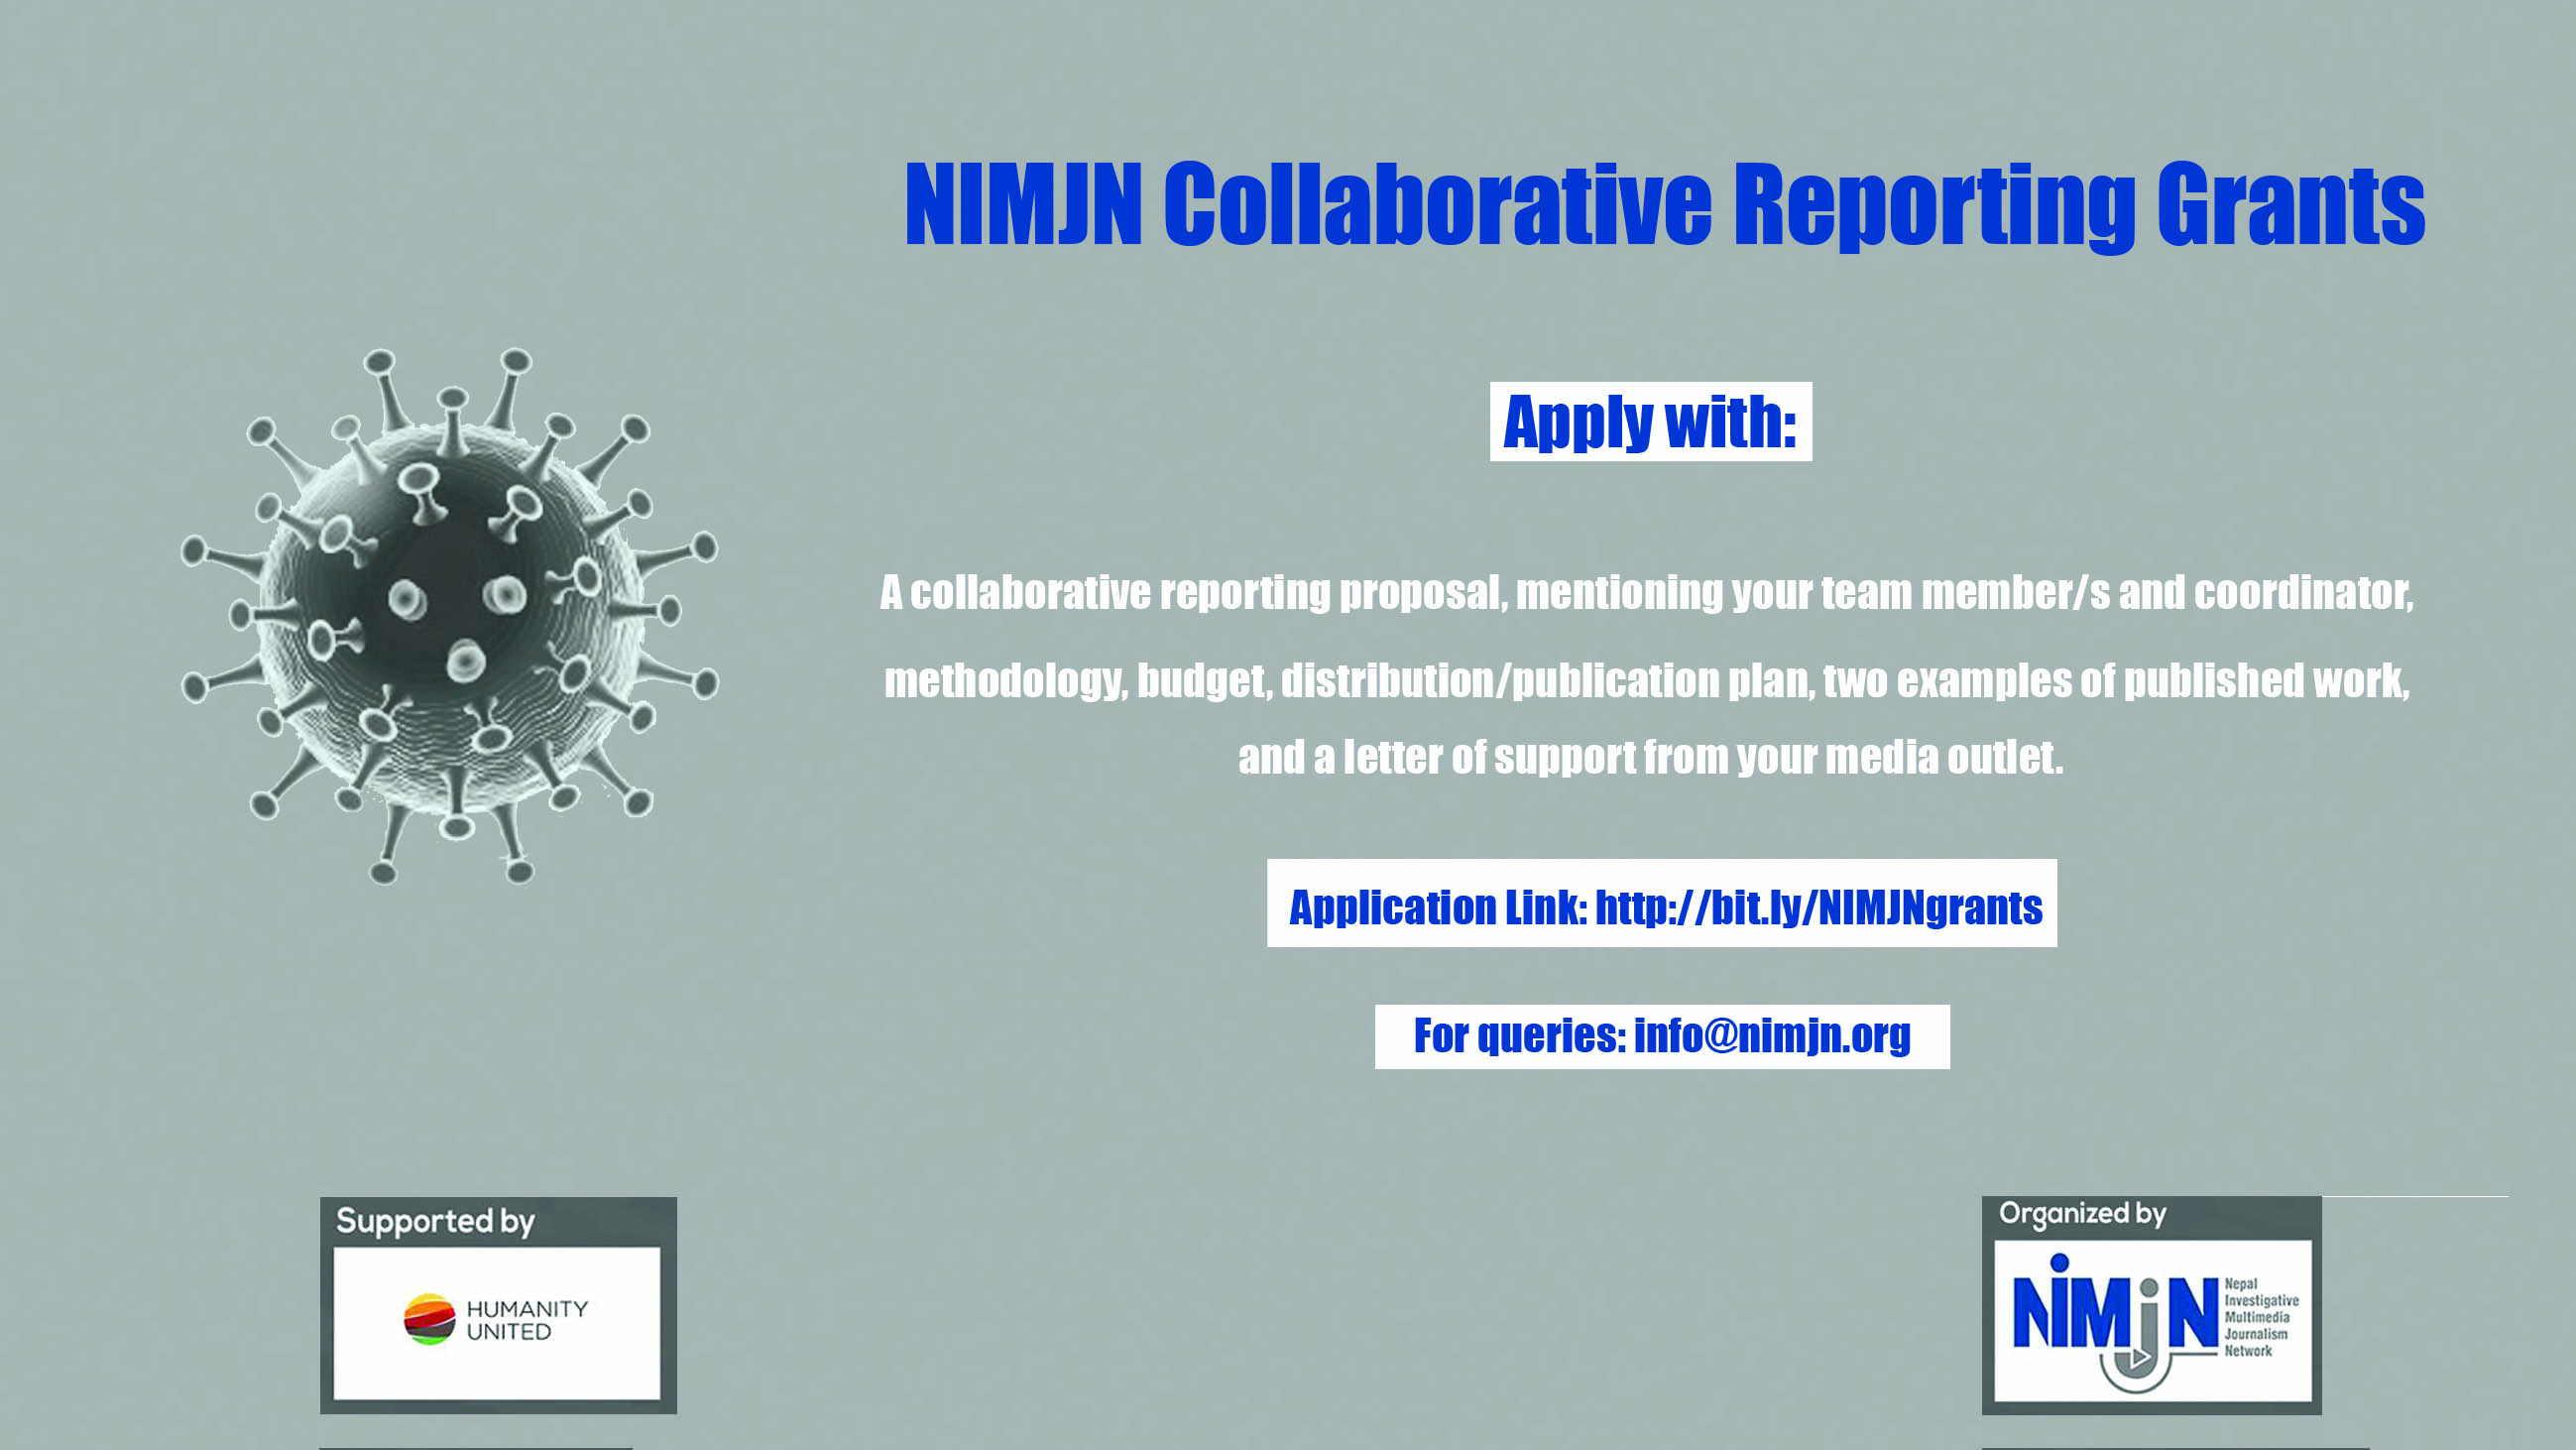 NIMJN Collaborative Reporting Grants